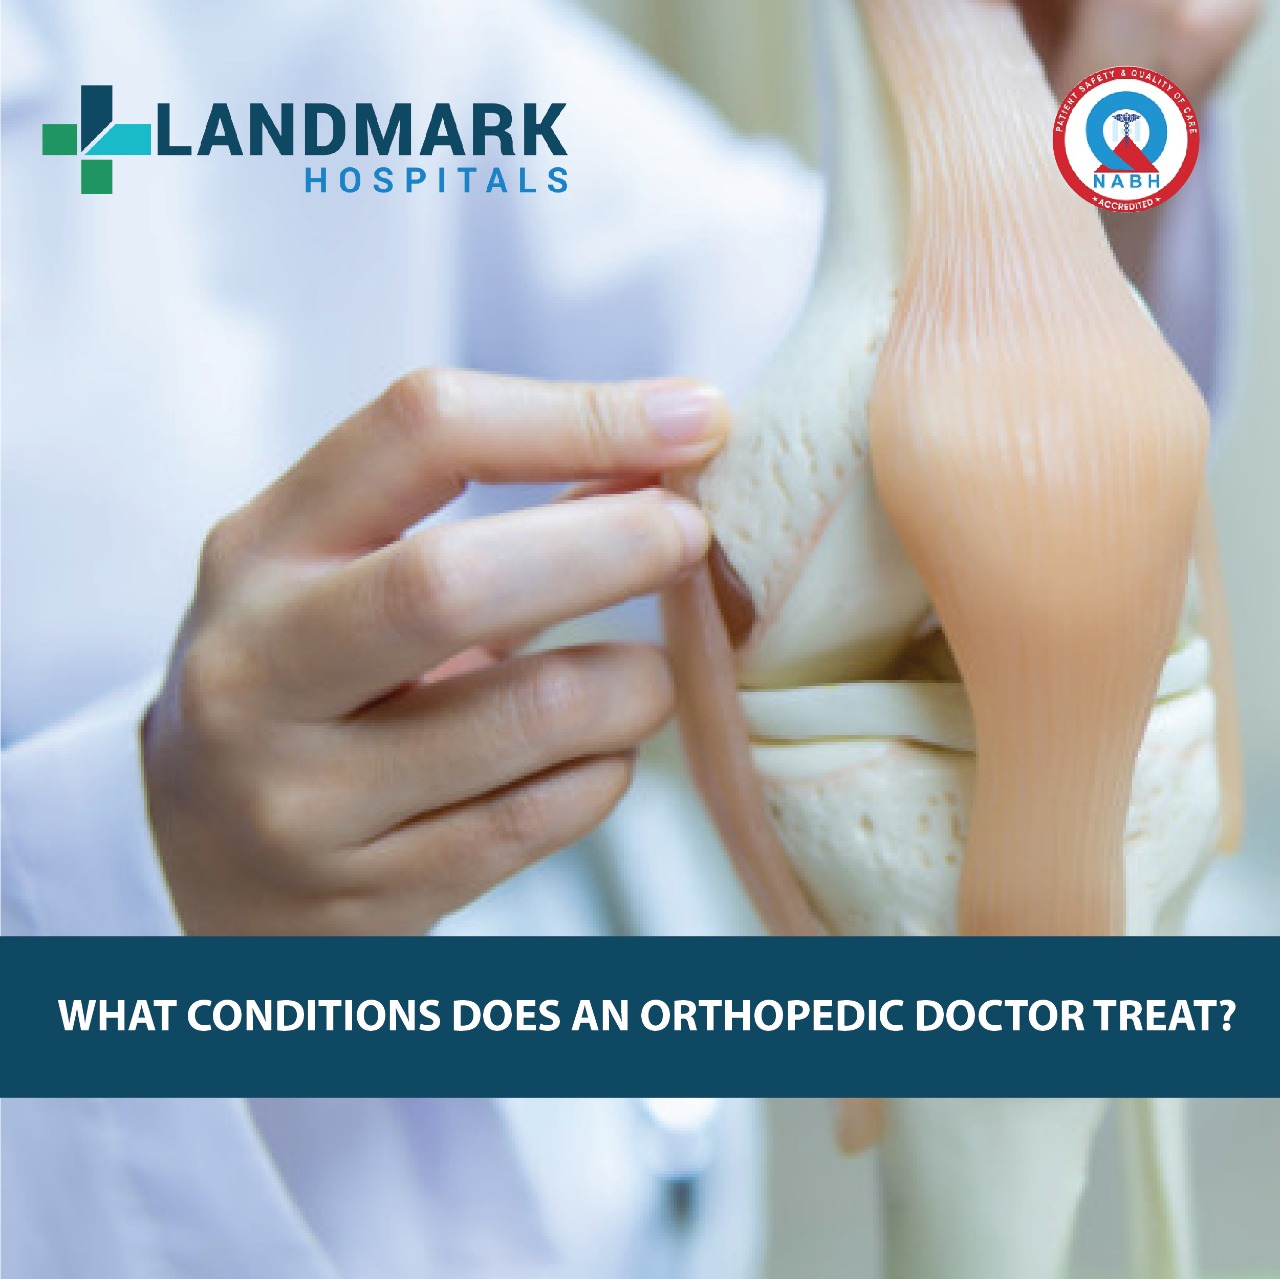 What conditions does an orthopedic doctor treat?